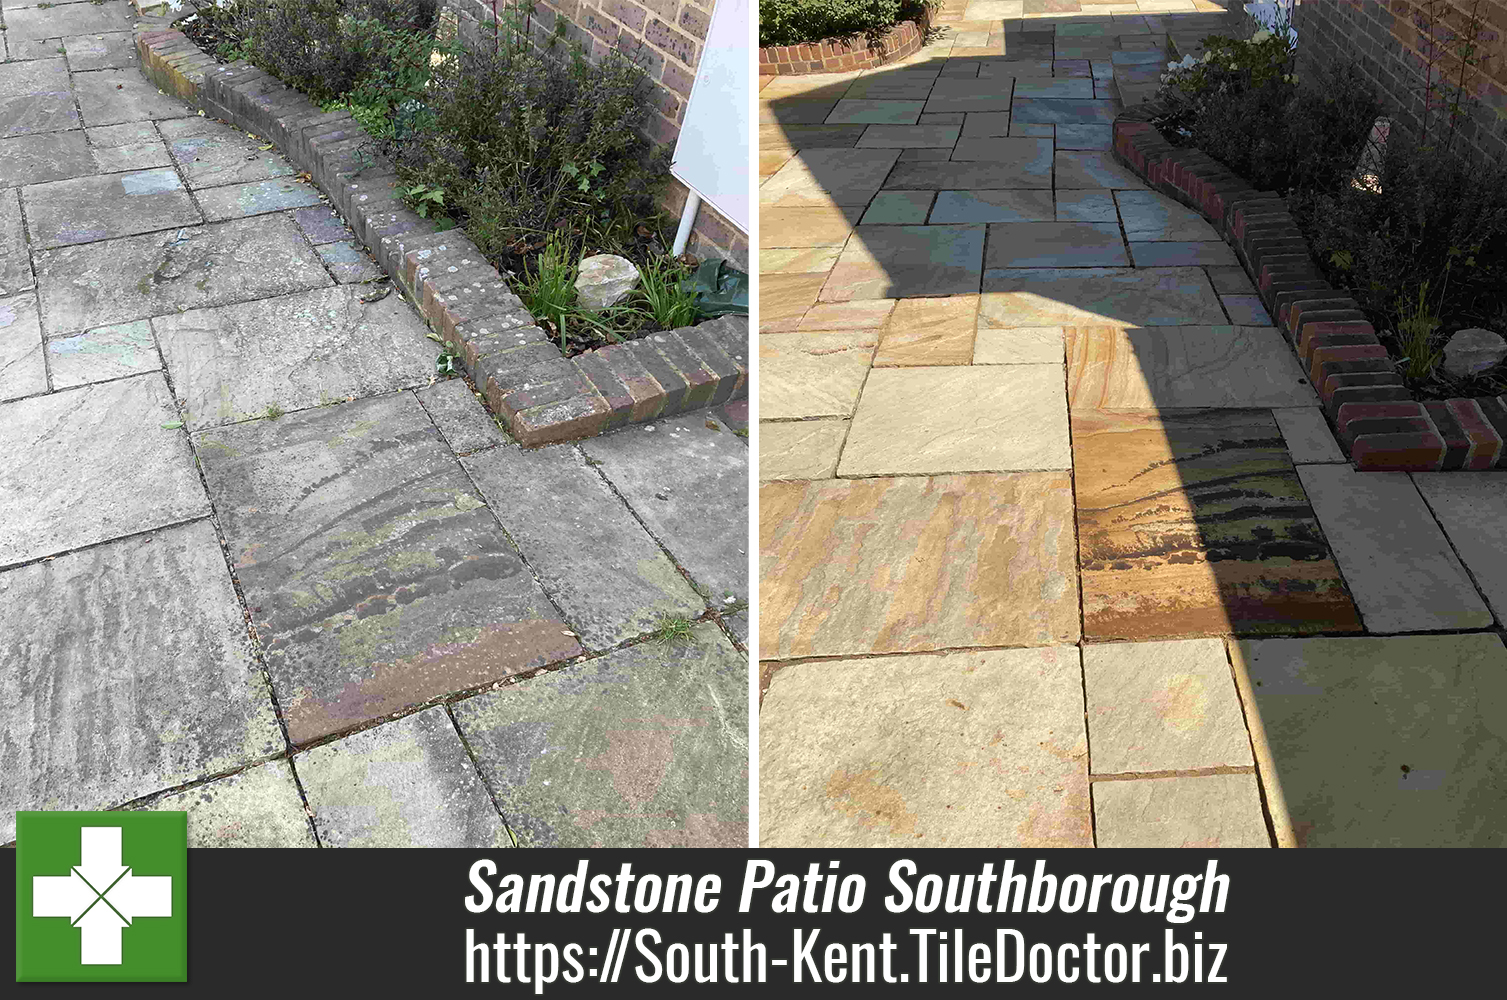 Renovating a Large Indian Sandstone Patio in Southborough